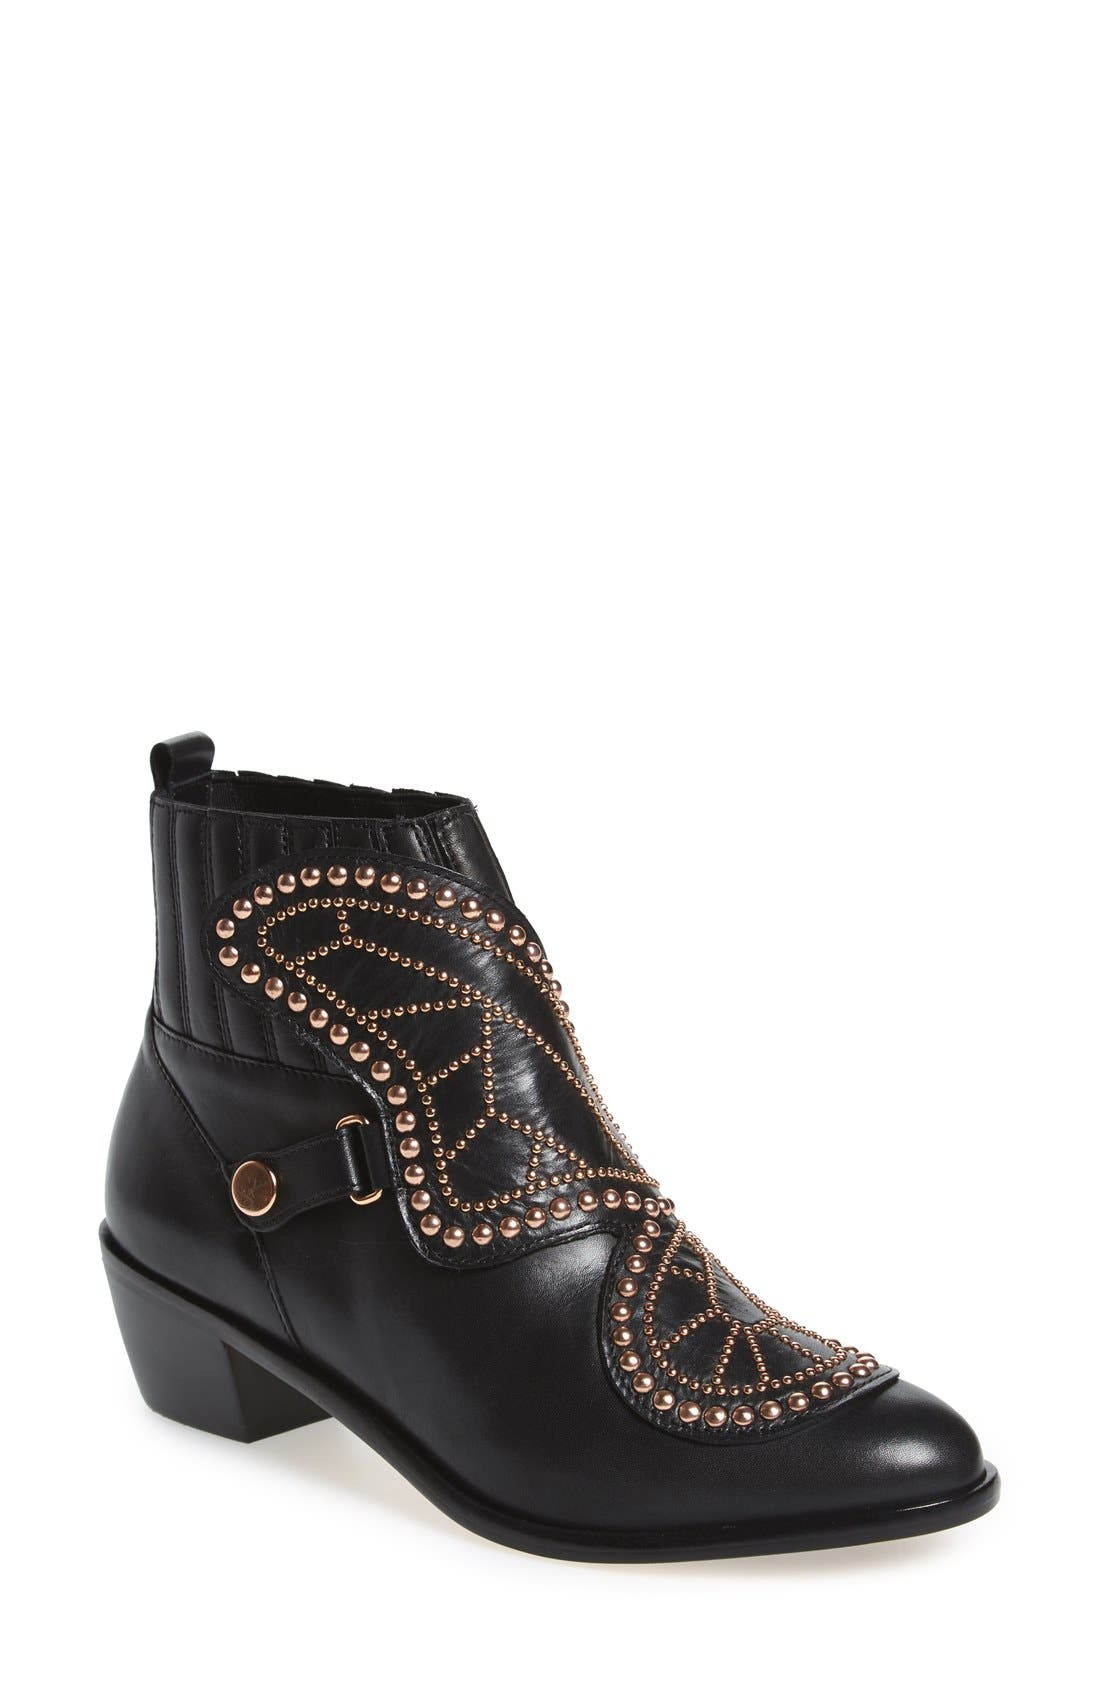 'Karina - Butterfly' Bootie, Main, color, 001